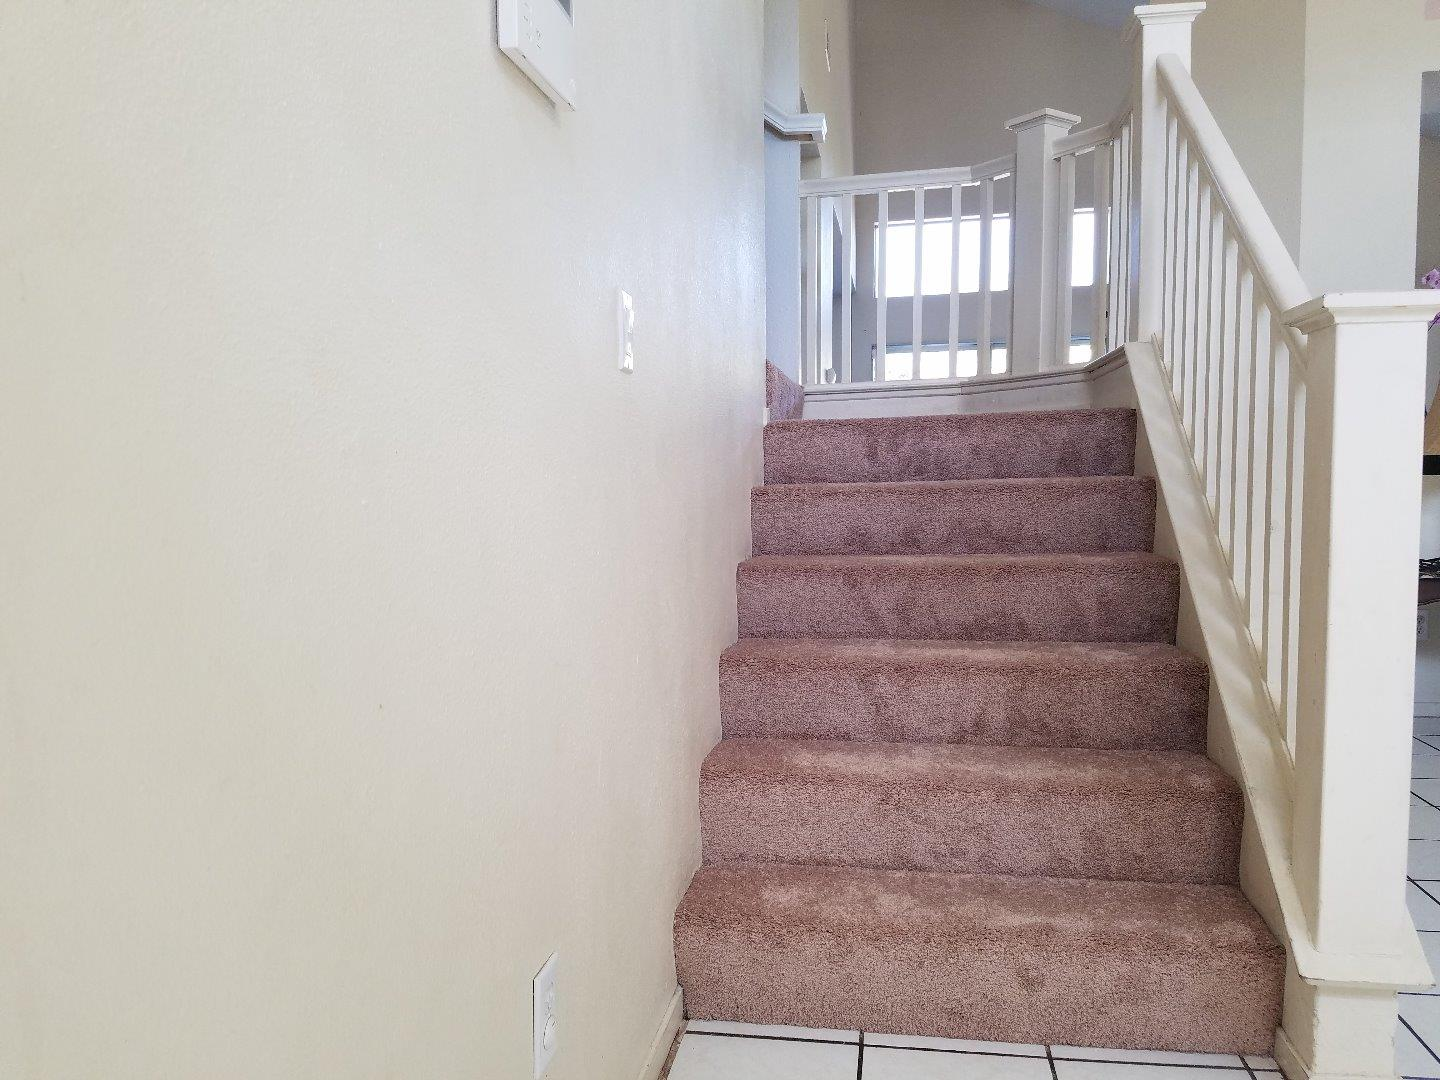 Additional photo for property listing at 727 Acapulco Way  Salinas, California 93905 United States